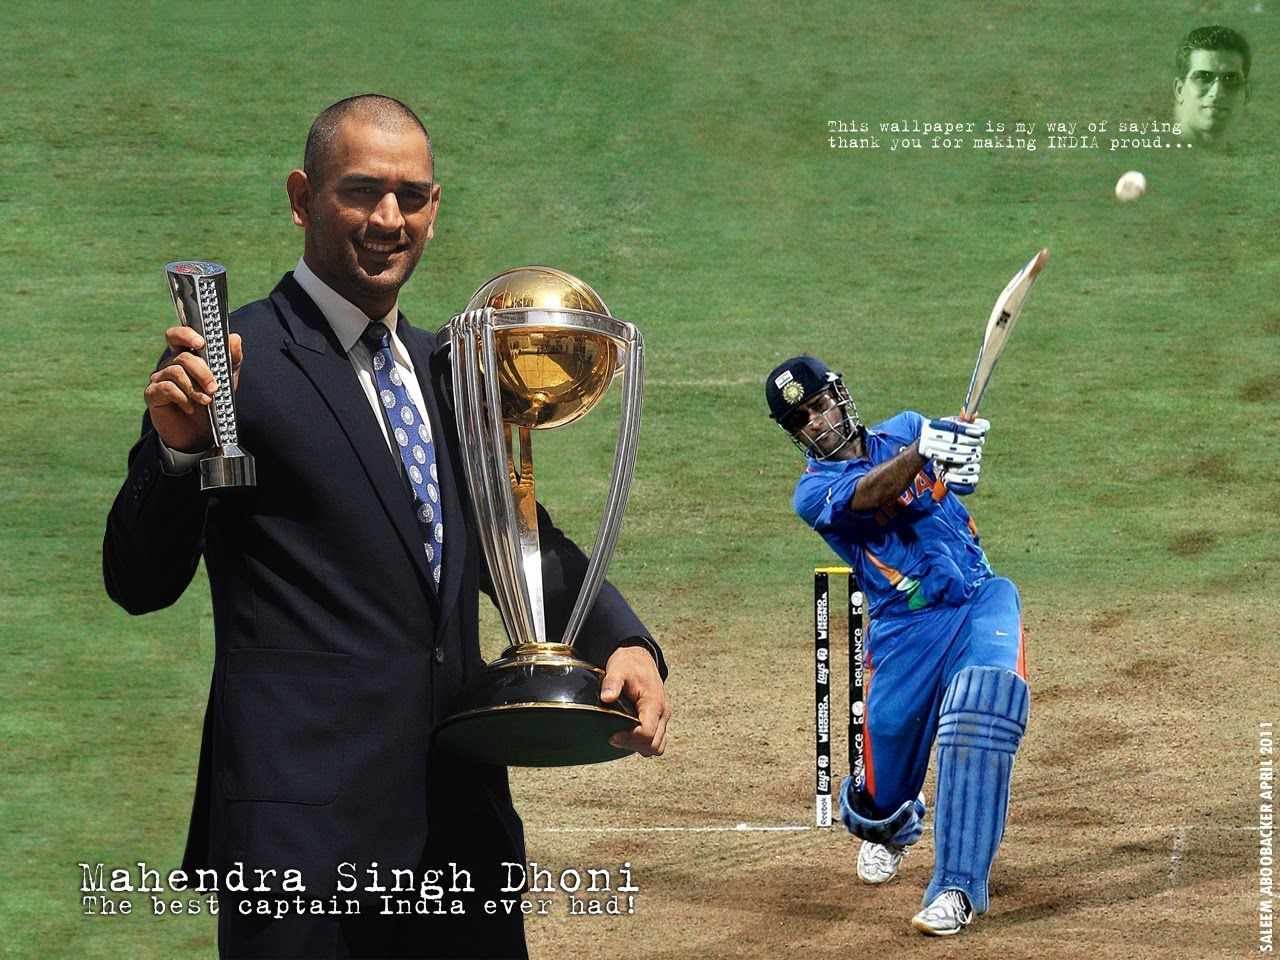 Ms dhoni net worth and earning with cars images a sports news - Wallpapers Of Mahendra Singh Dhoni Wallpapers Adorable Wallpapers